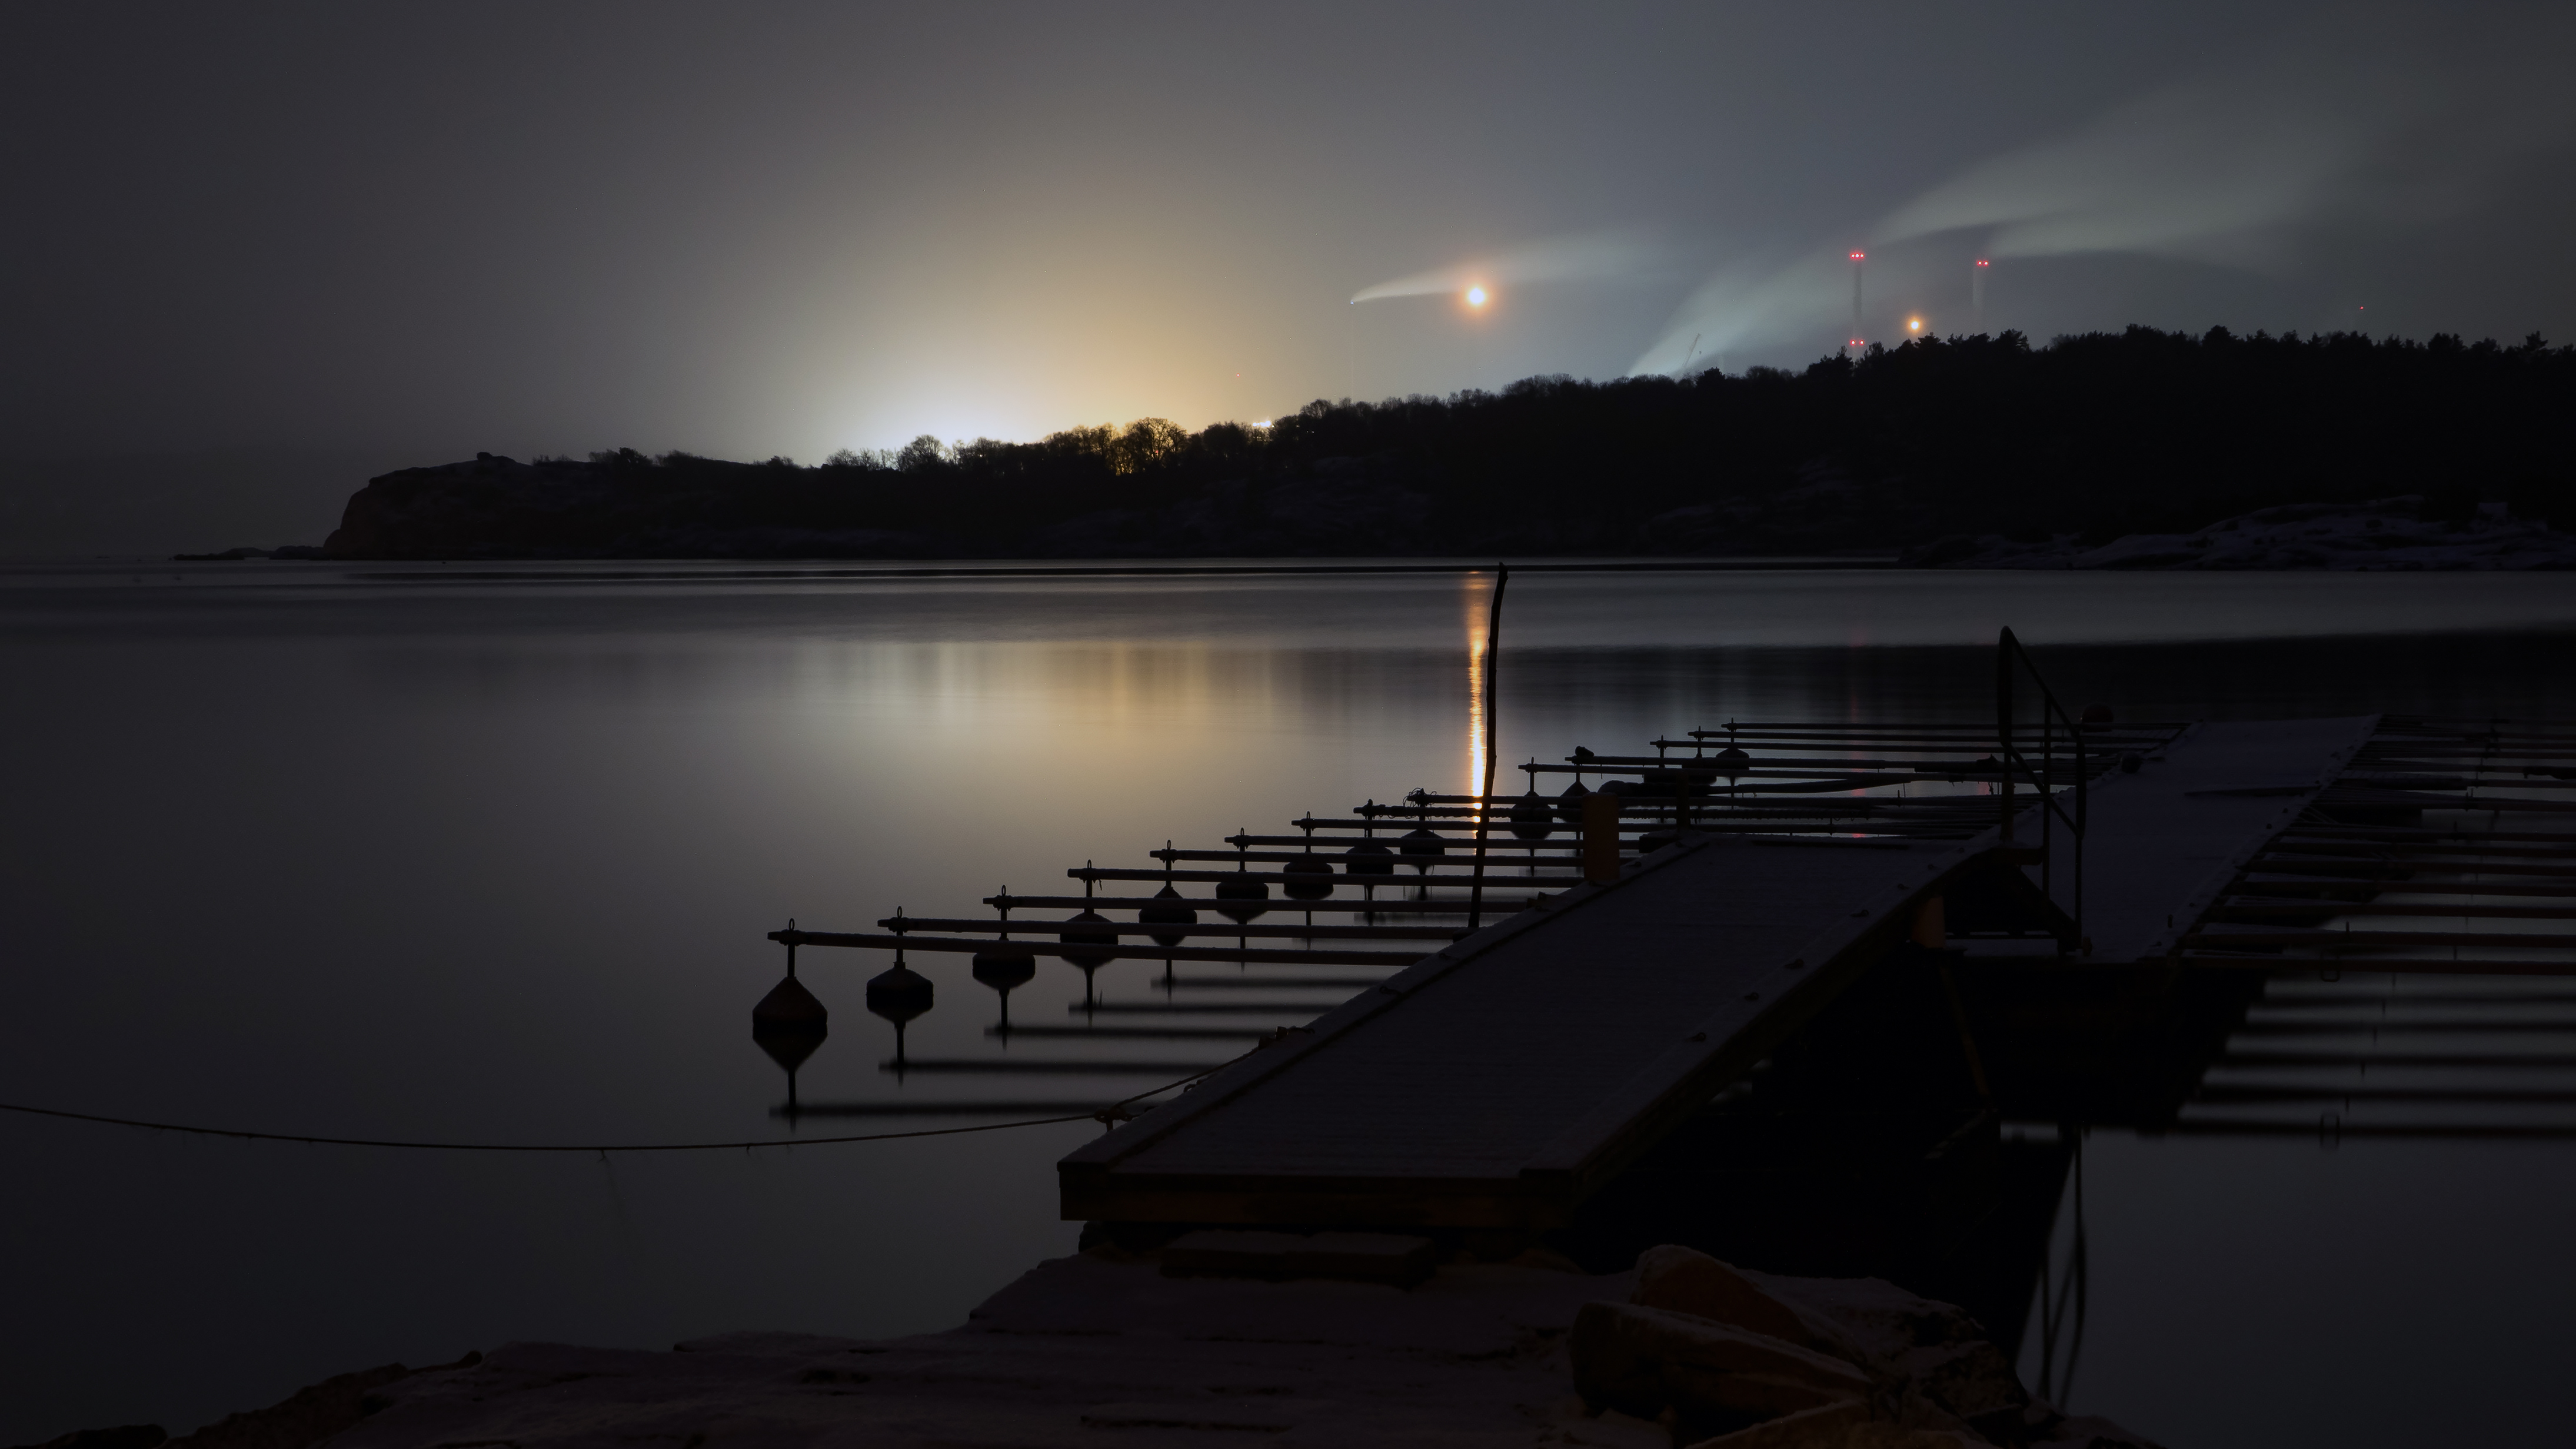 Snowfall at night over Brofjorden and Preemraff oil refinery 2, Boat, Brofjorden, Dock_fingers, Flames, HQ Photo